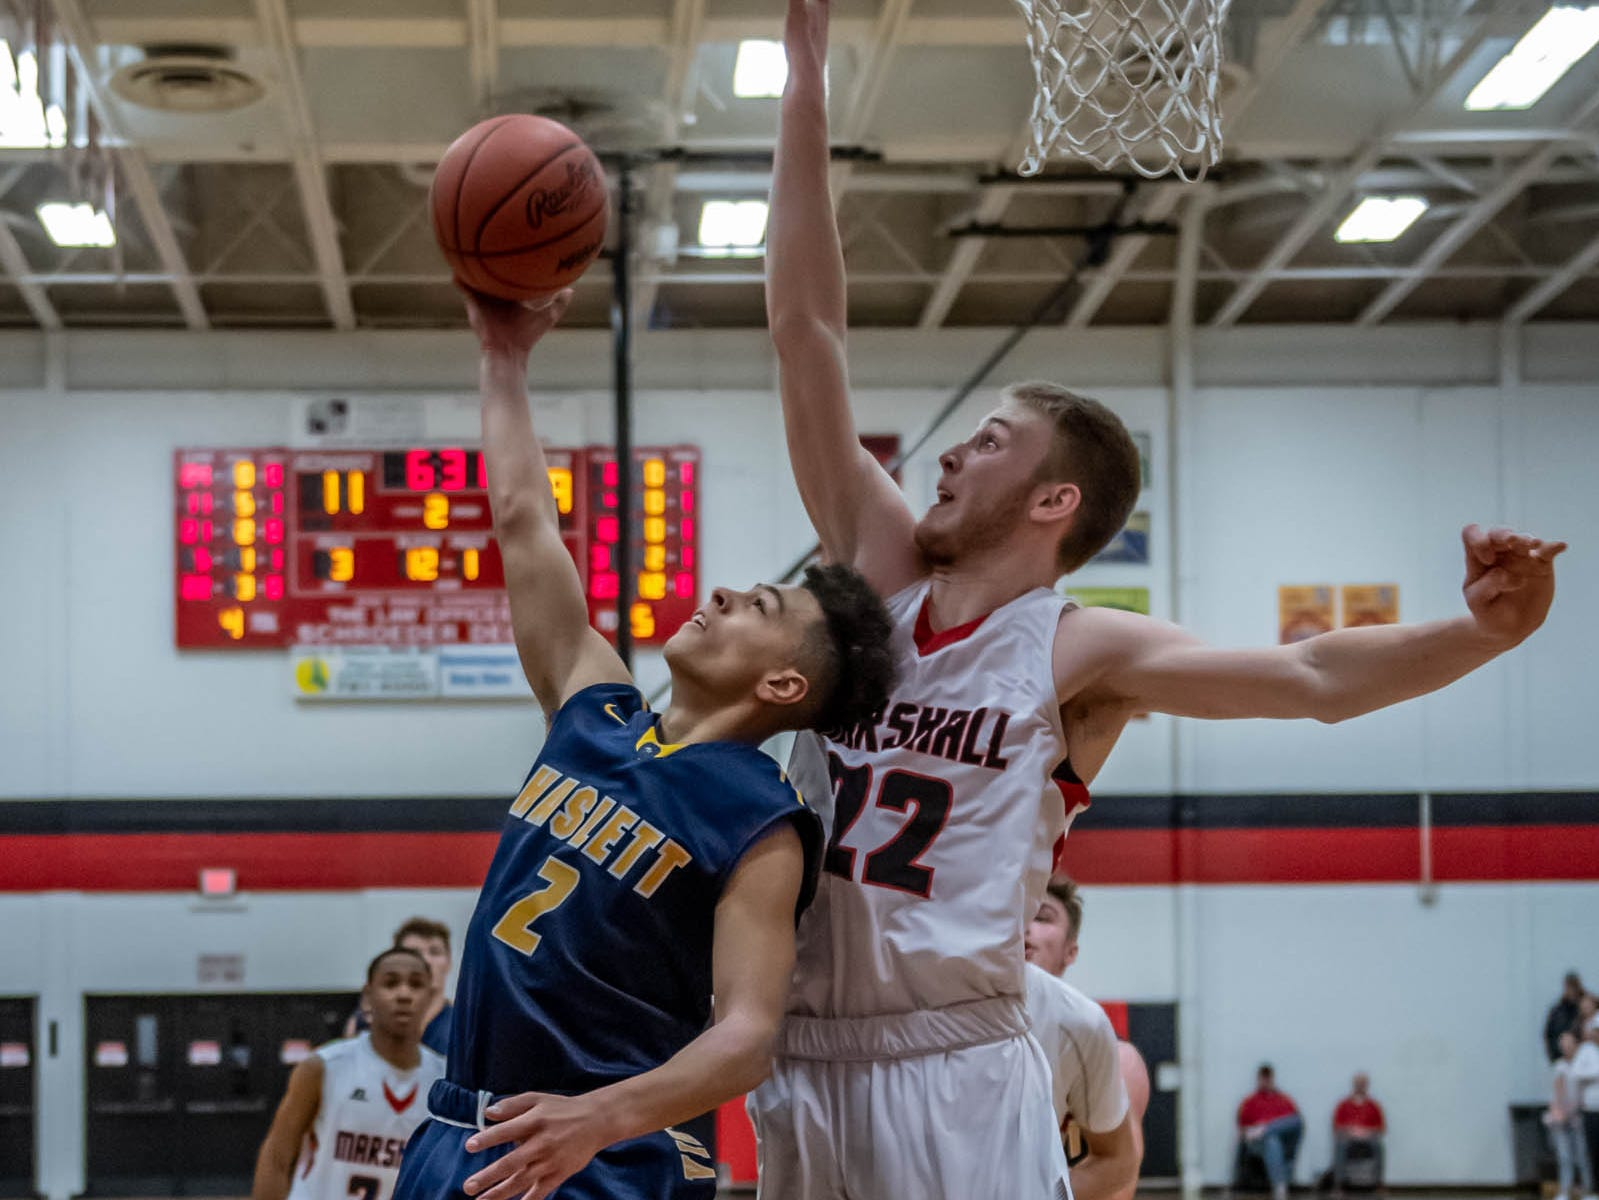 Haslett's Ty Andrades (2) goes for the basket while being guarded by Marshall's Jeremy Luciani (22) during first half action of regional playoffs Tuesday evening.